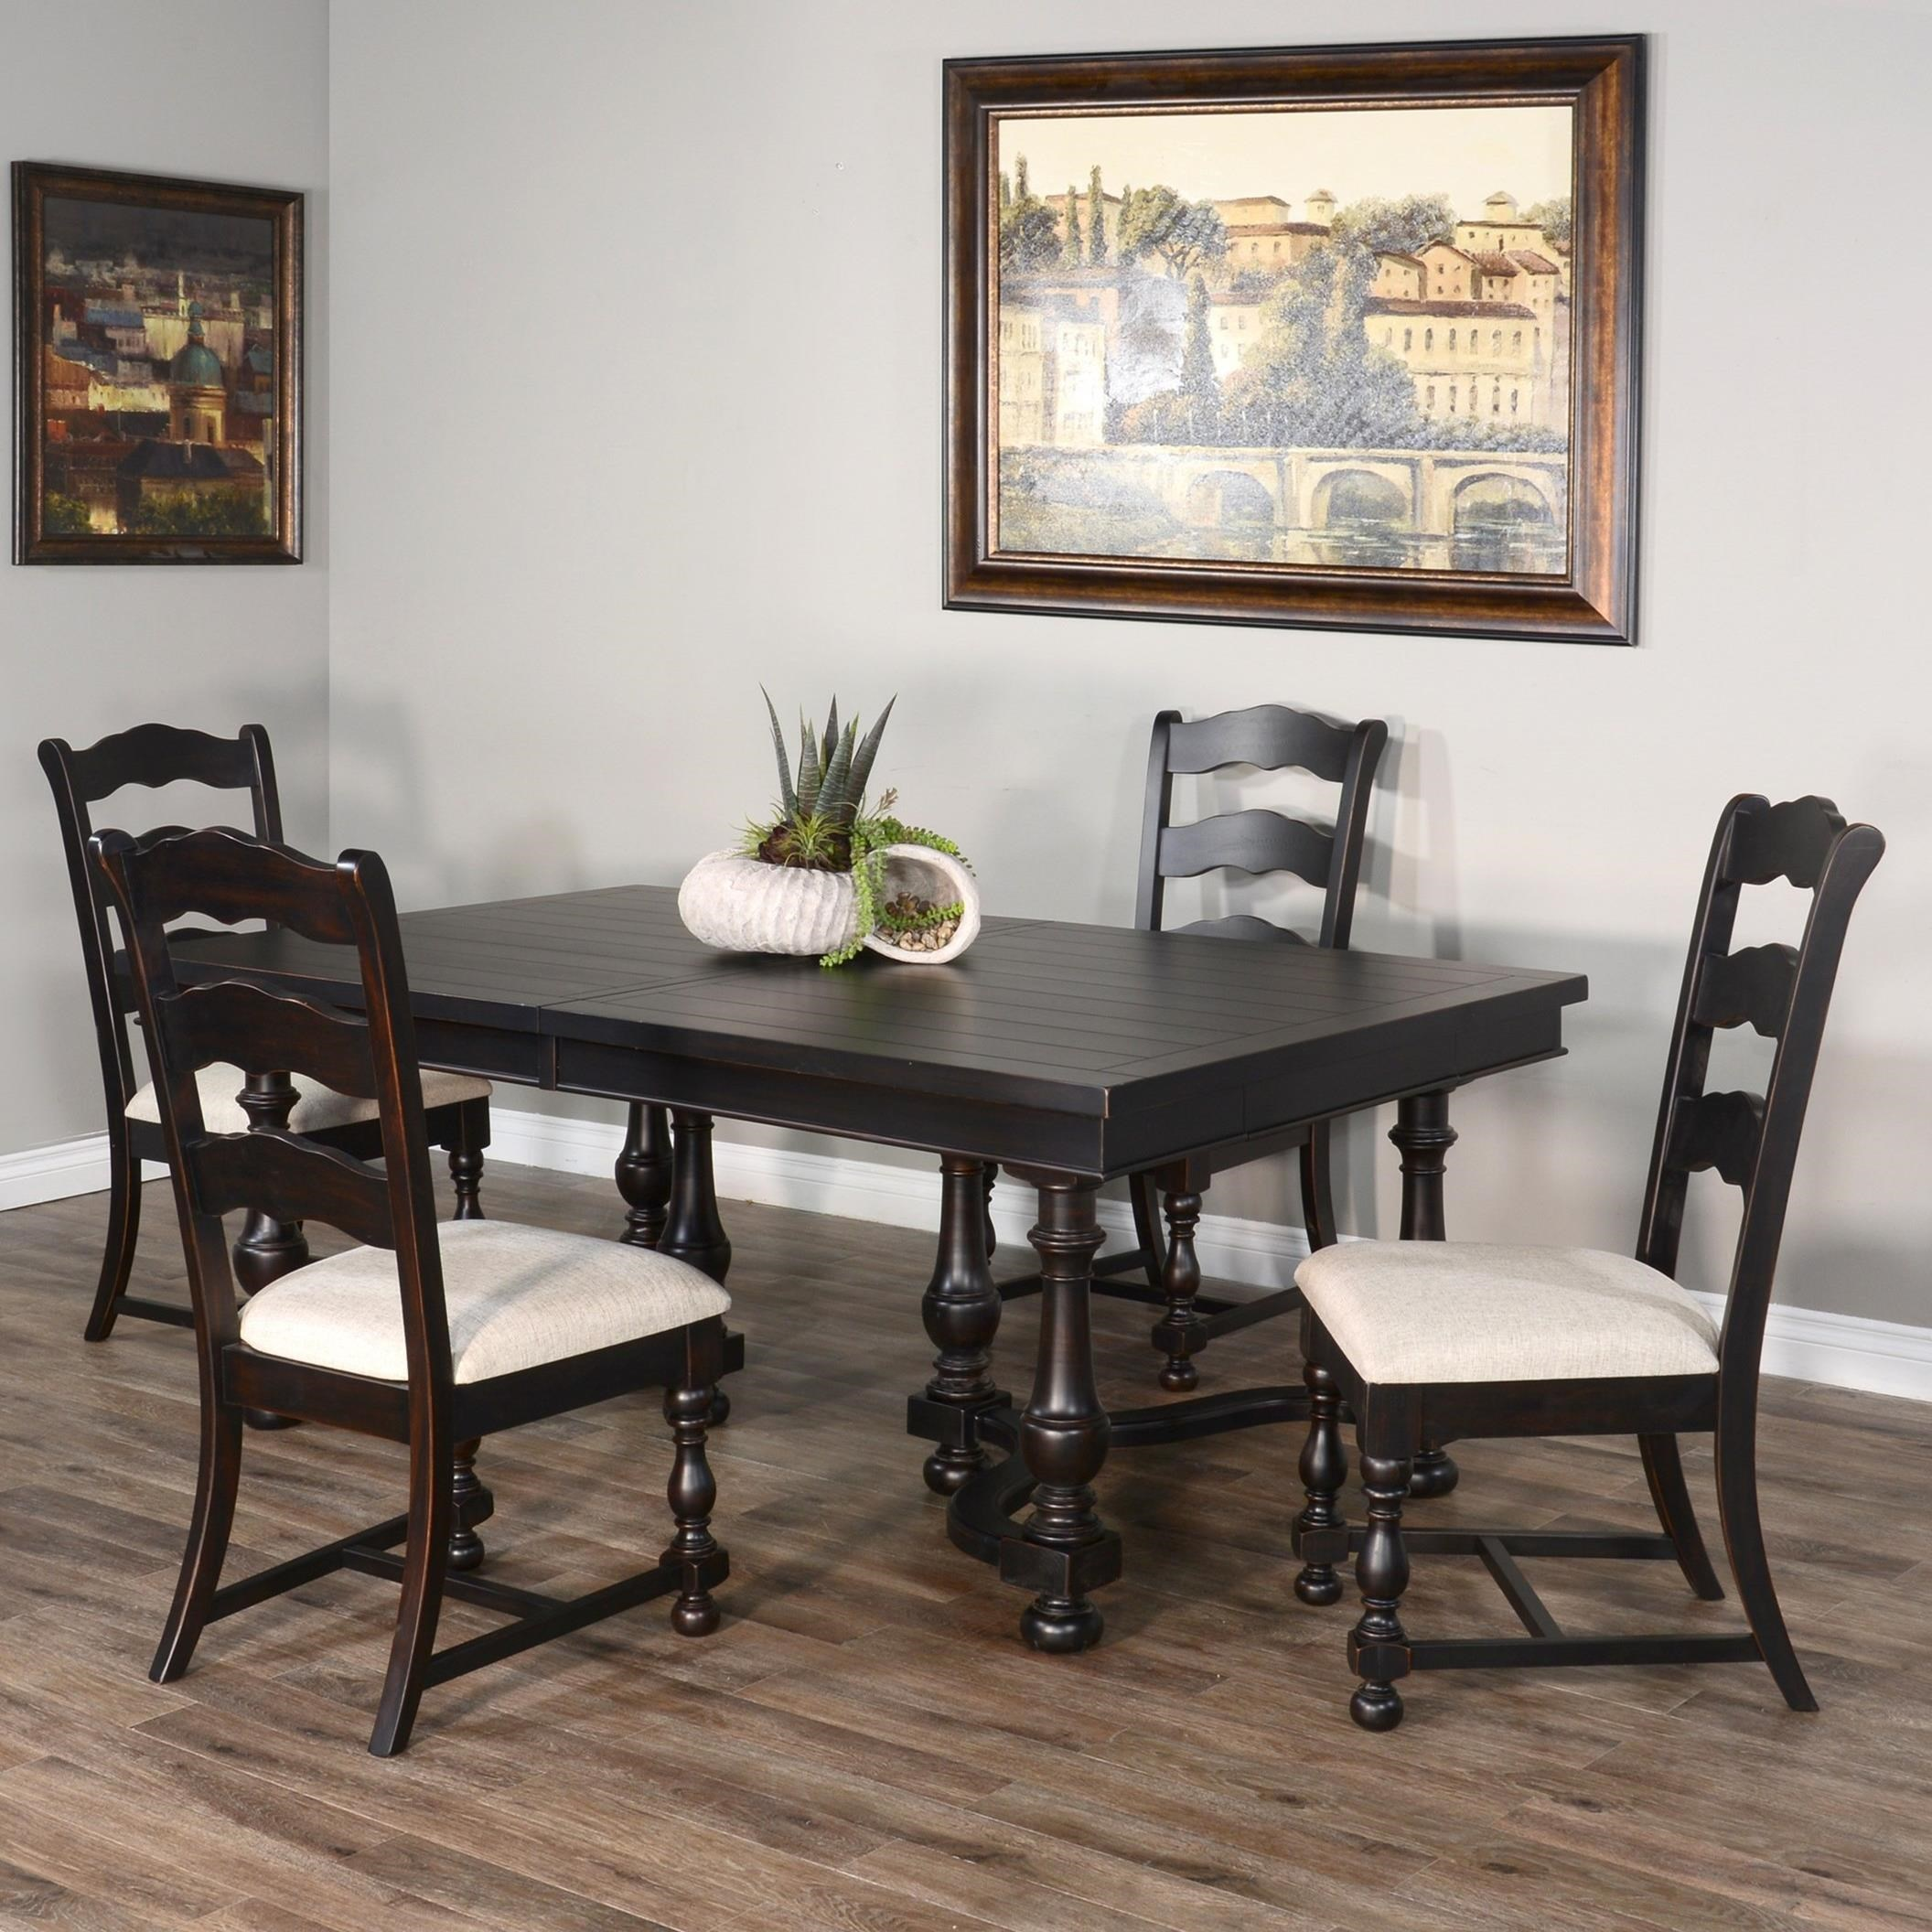 Phoenix Phoenix 5-Piece Dining Set by Sunny Designs at Morris Home